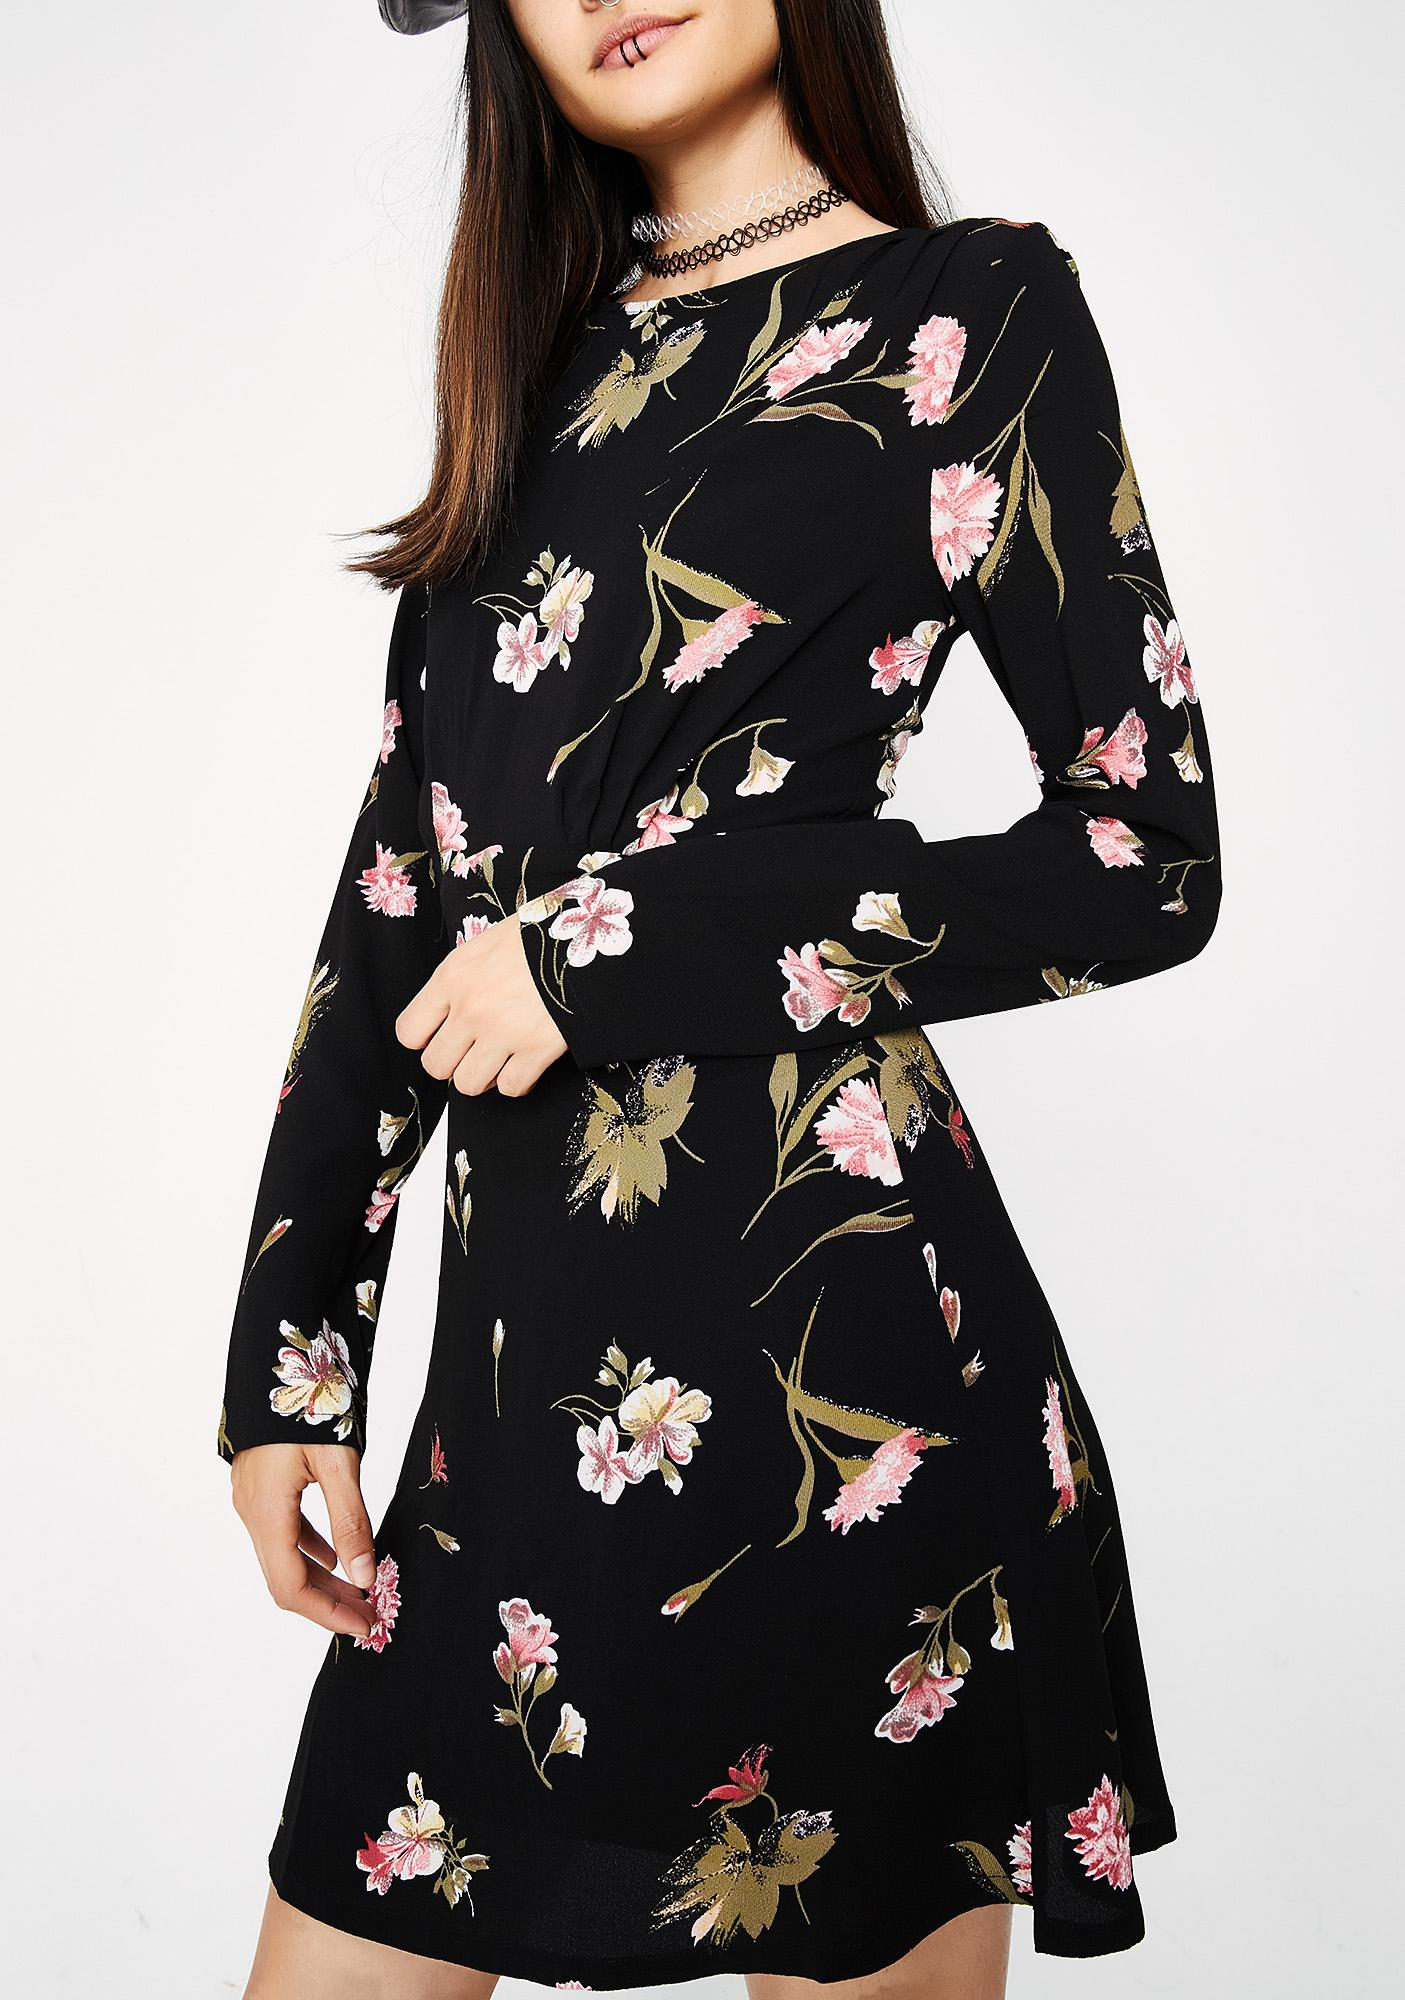 Throwing Flowers Dress